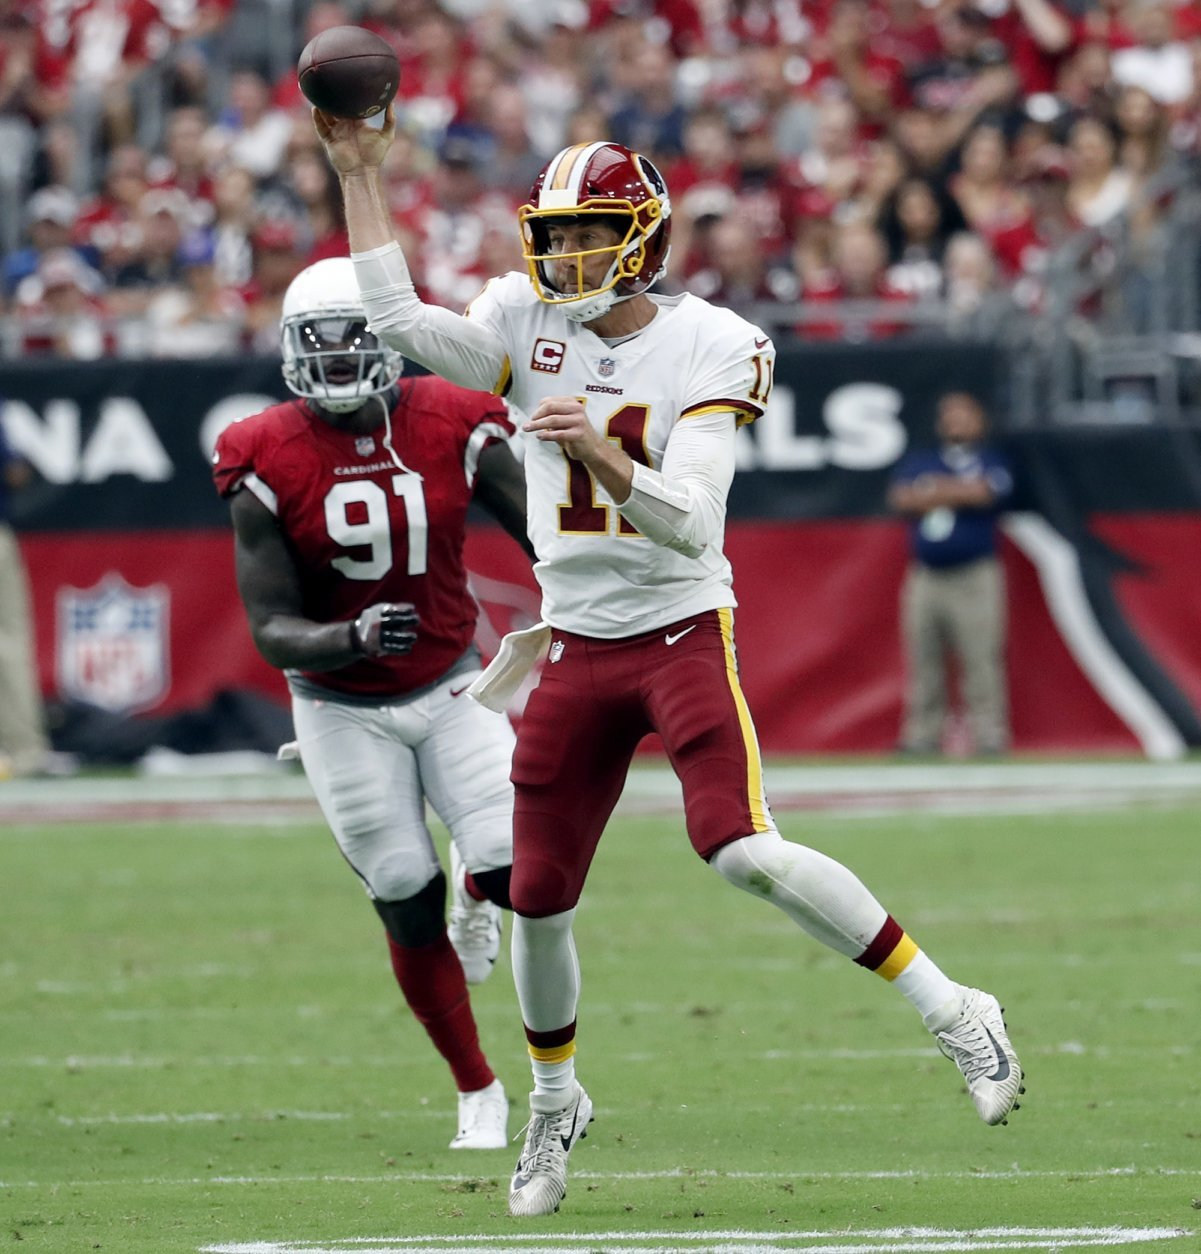 Washington Redskins quarterback Alex Smith (11) throws as Arizona Cardinals defensive end Benson Mayowa (91) pursues during the first half of an NFL football game, Sunday, Sept. 9, 2018, in Glendale, Ariz. (AP Photo/Rick Scuteri)